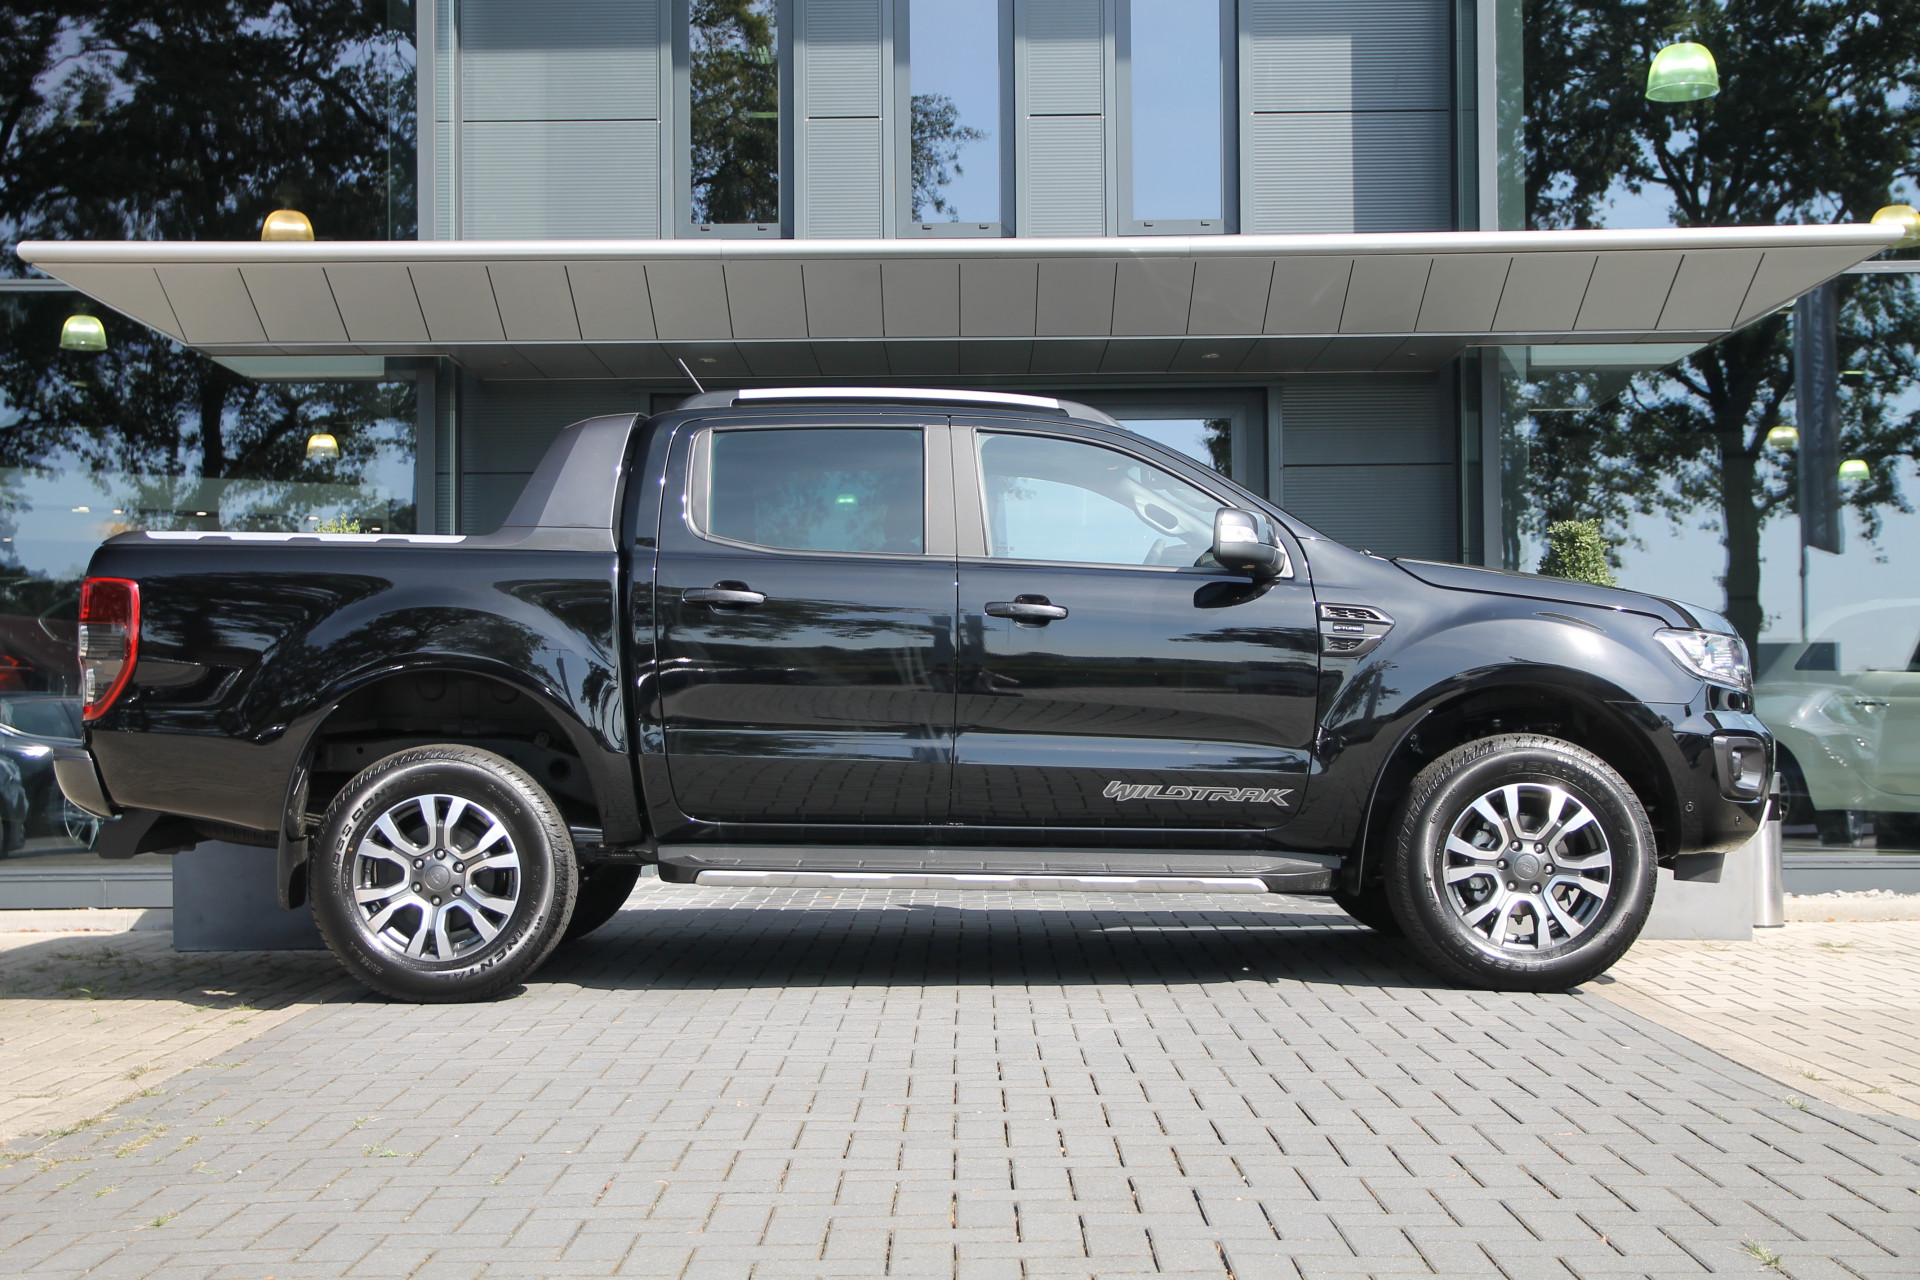 Tweedehands Ford Ranger occasion